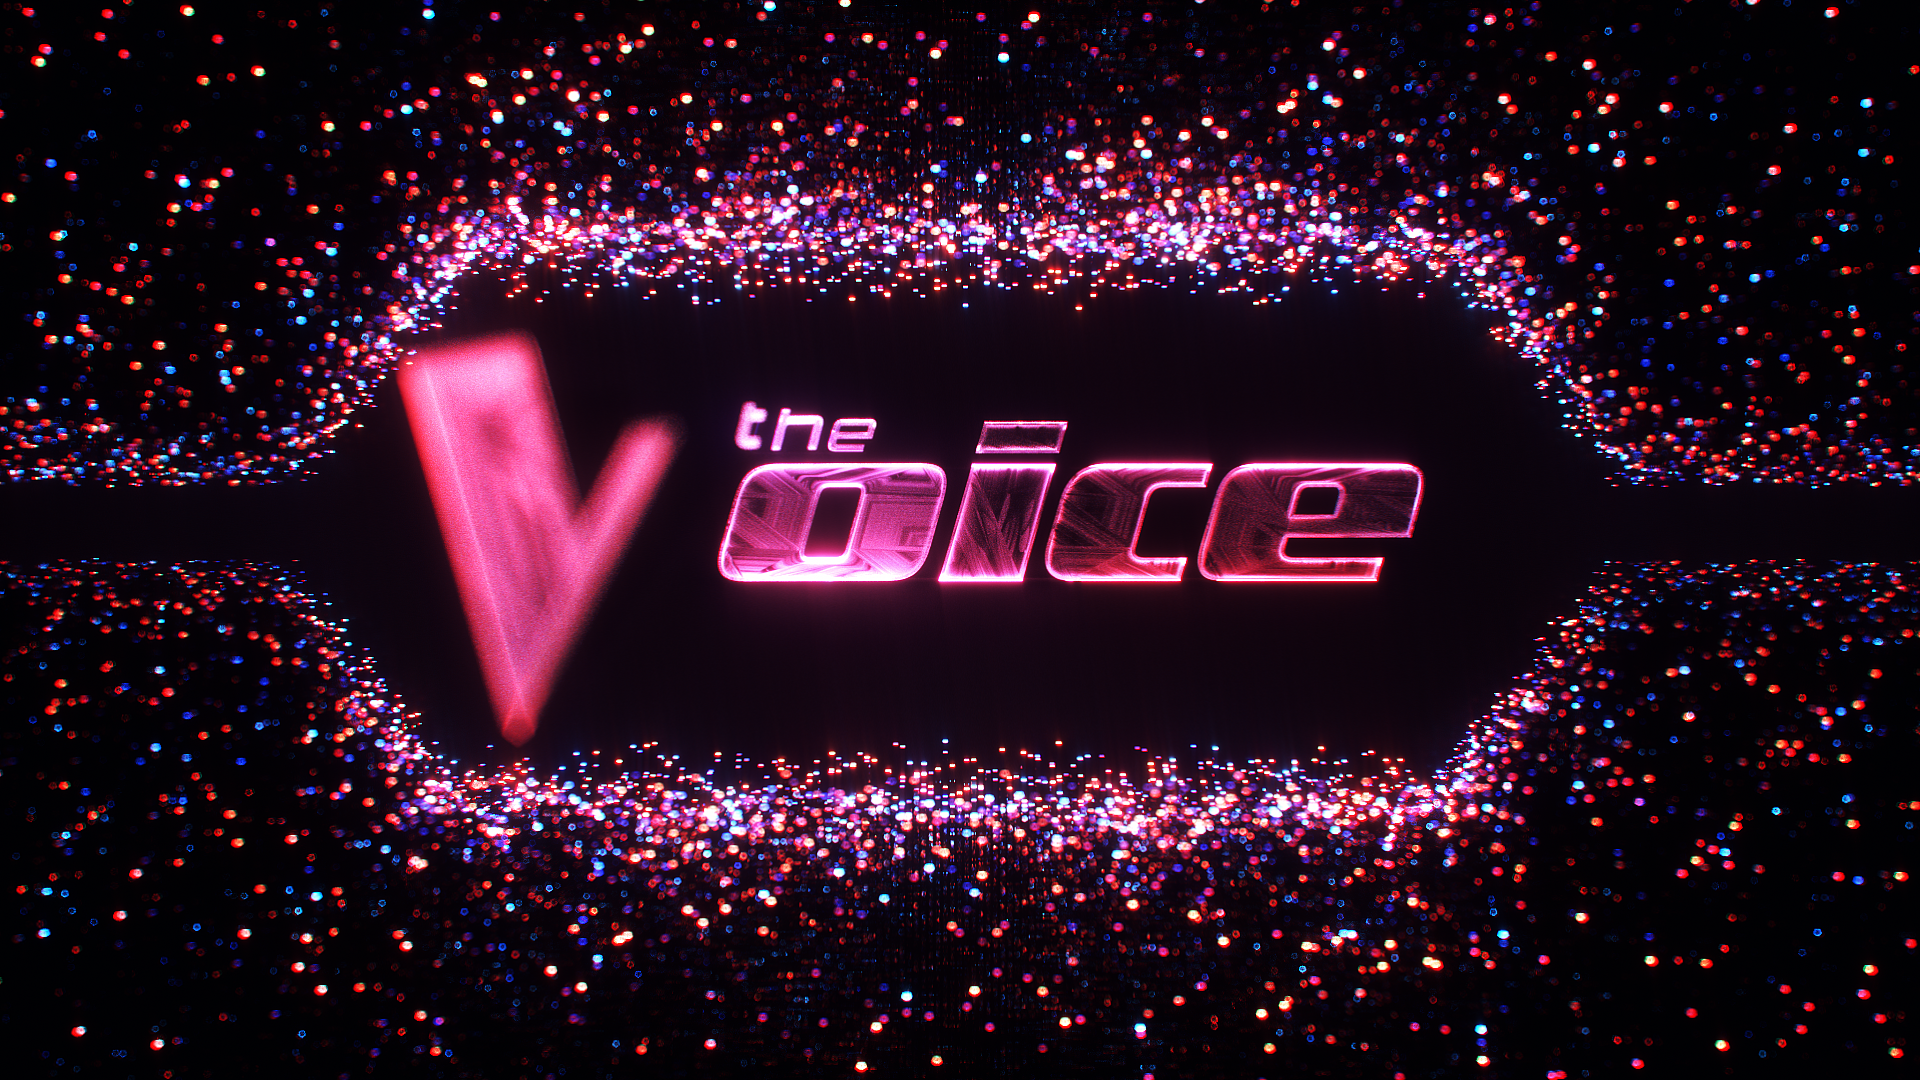 Framework1702_TheVoice_LogoLoop_Frame4.png